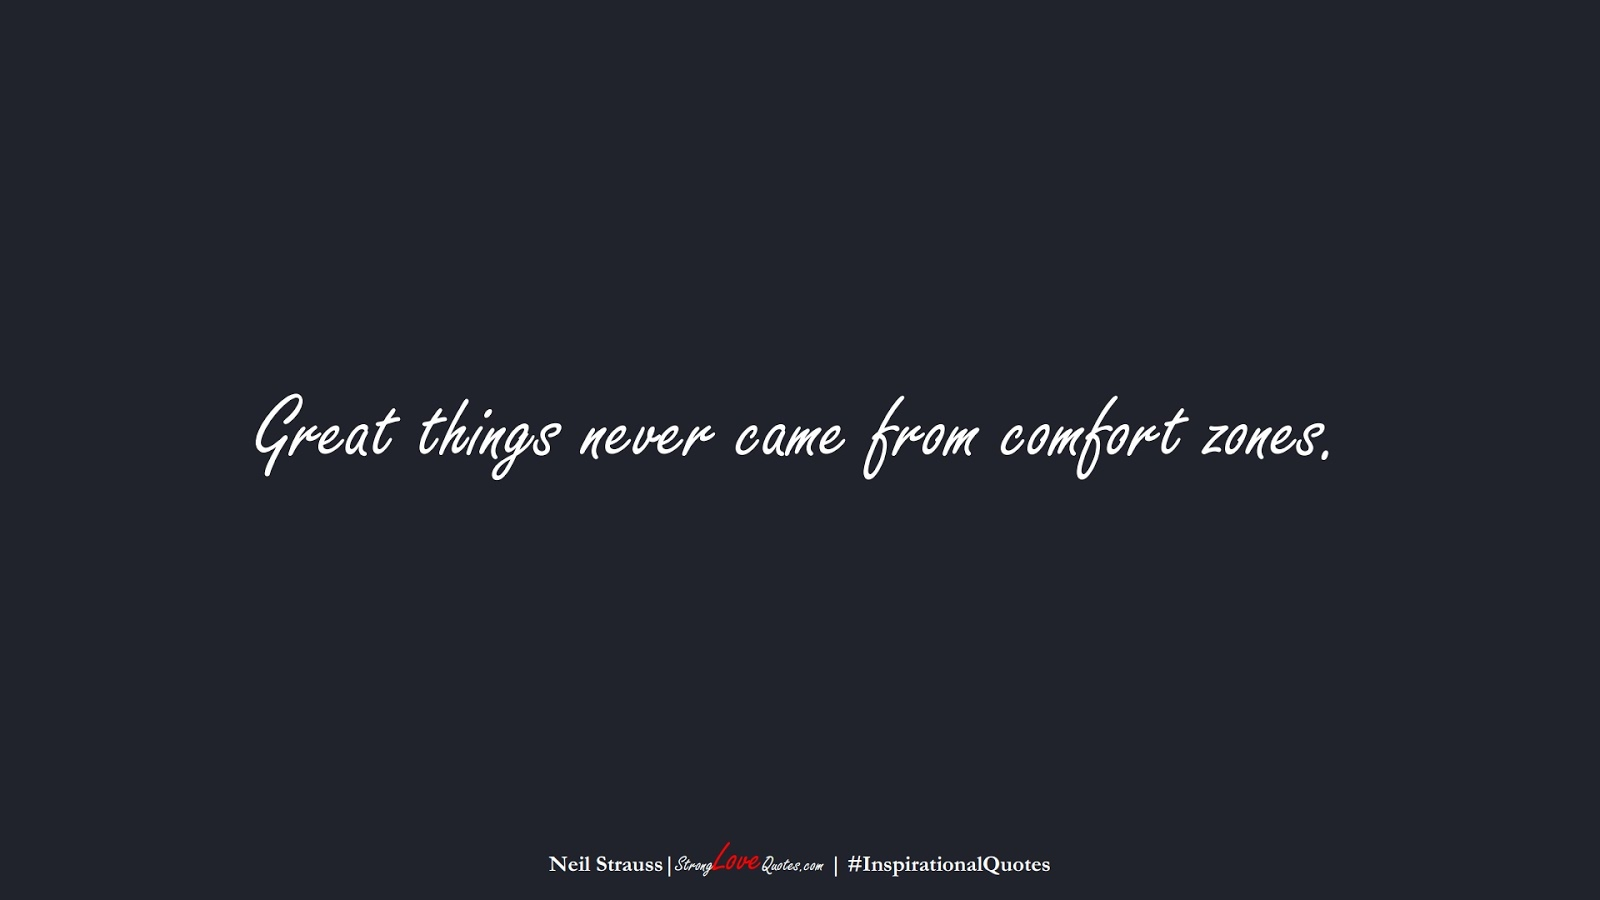 Great things never came from comfort zones. (Neil Strauss);  #InspirationalQuotes